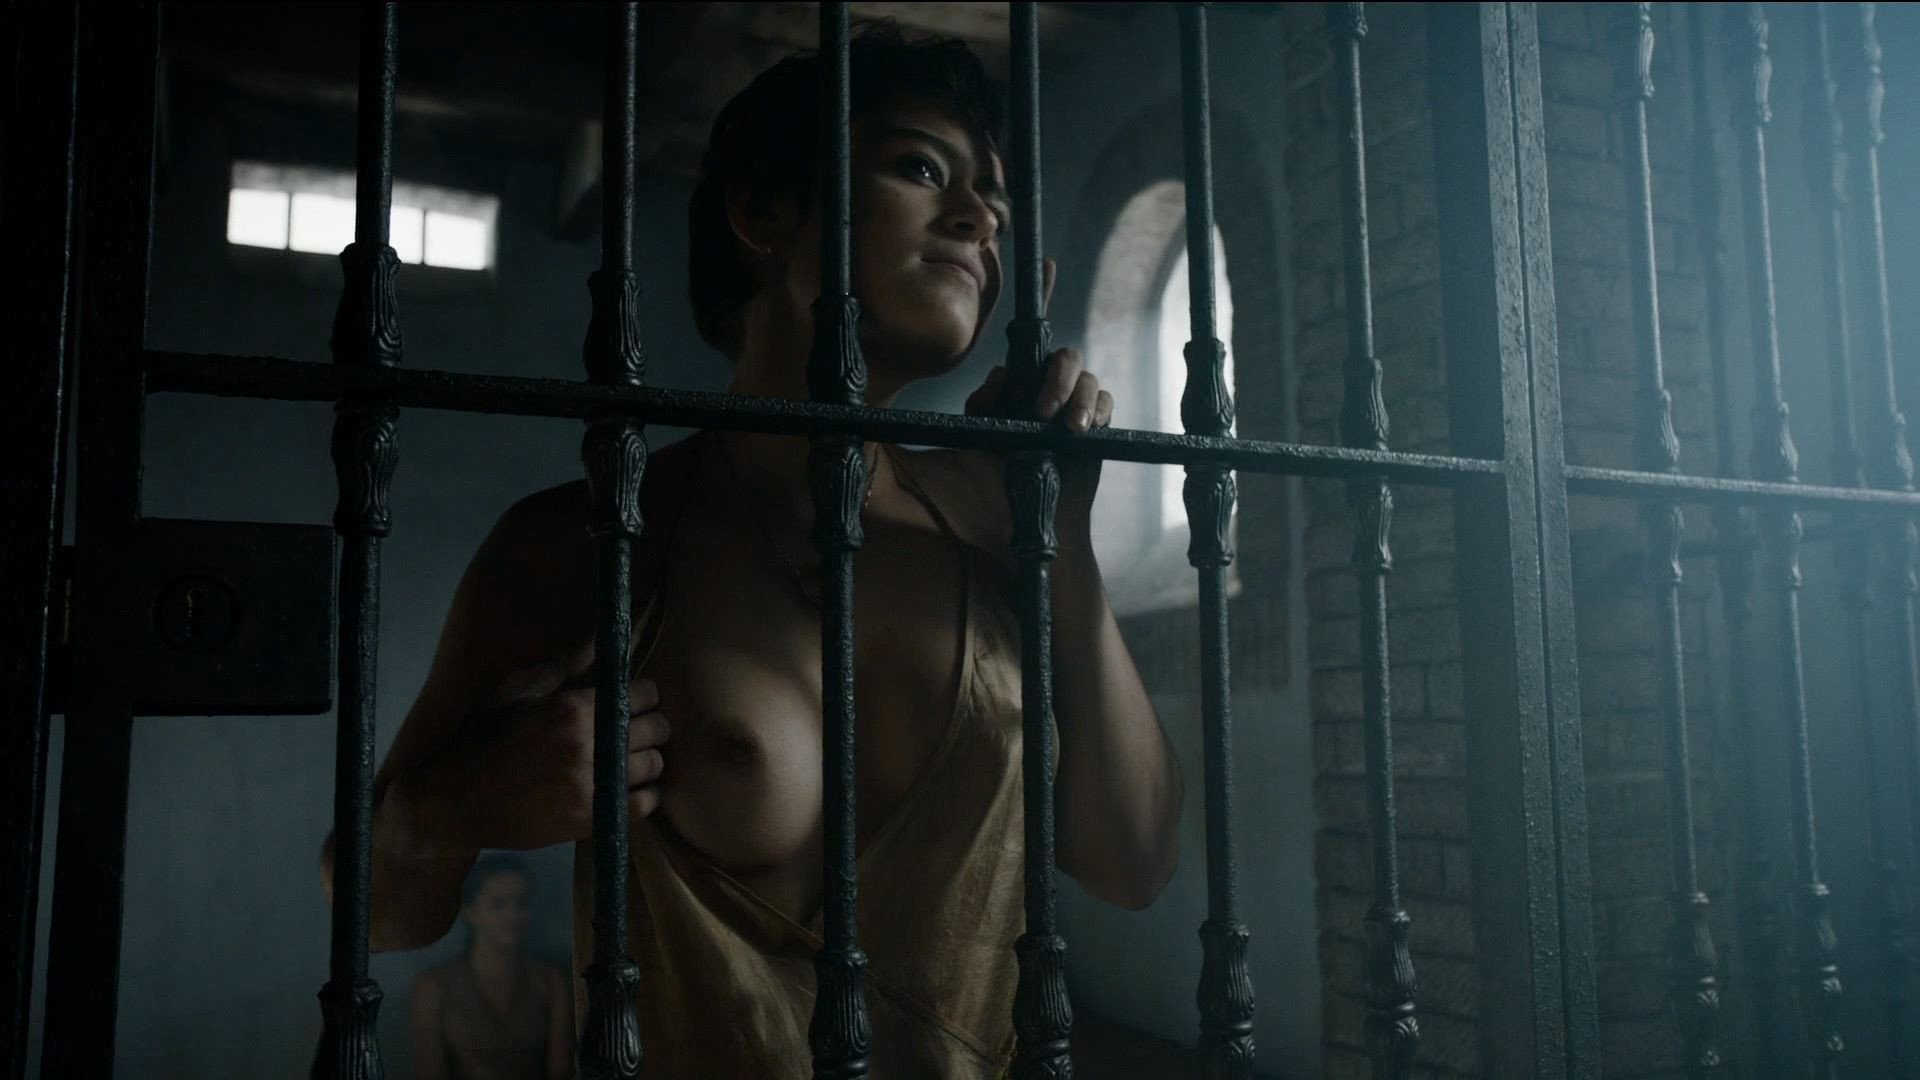 Rosabell Laurenti Sellers Topless 6 TheFappening.nu